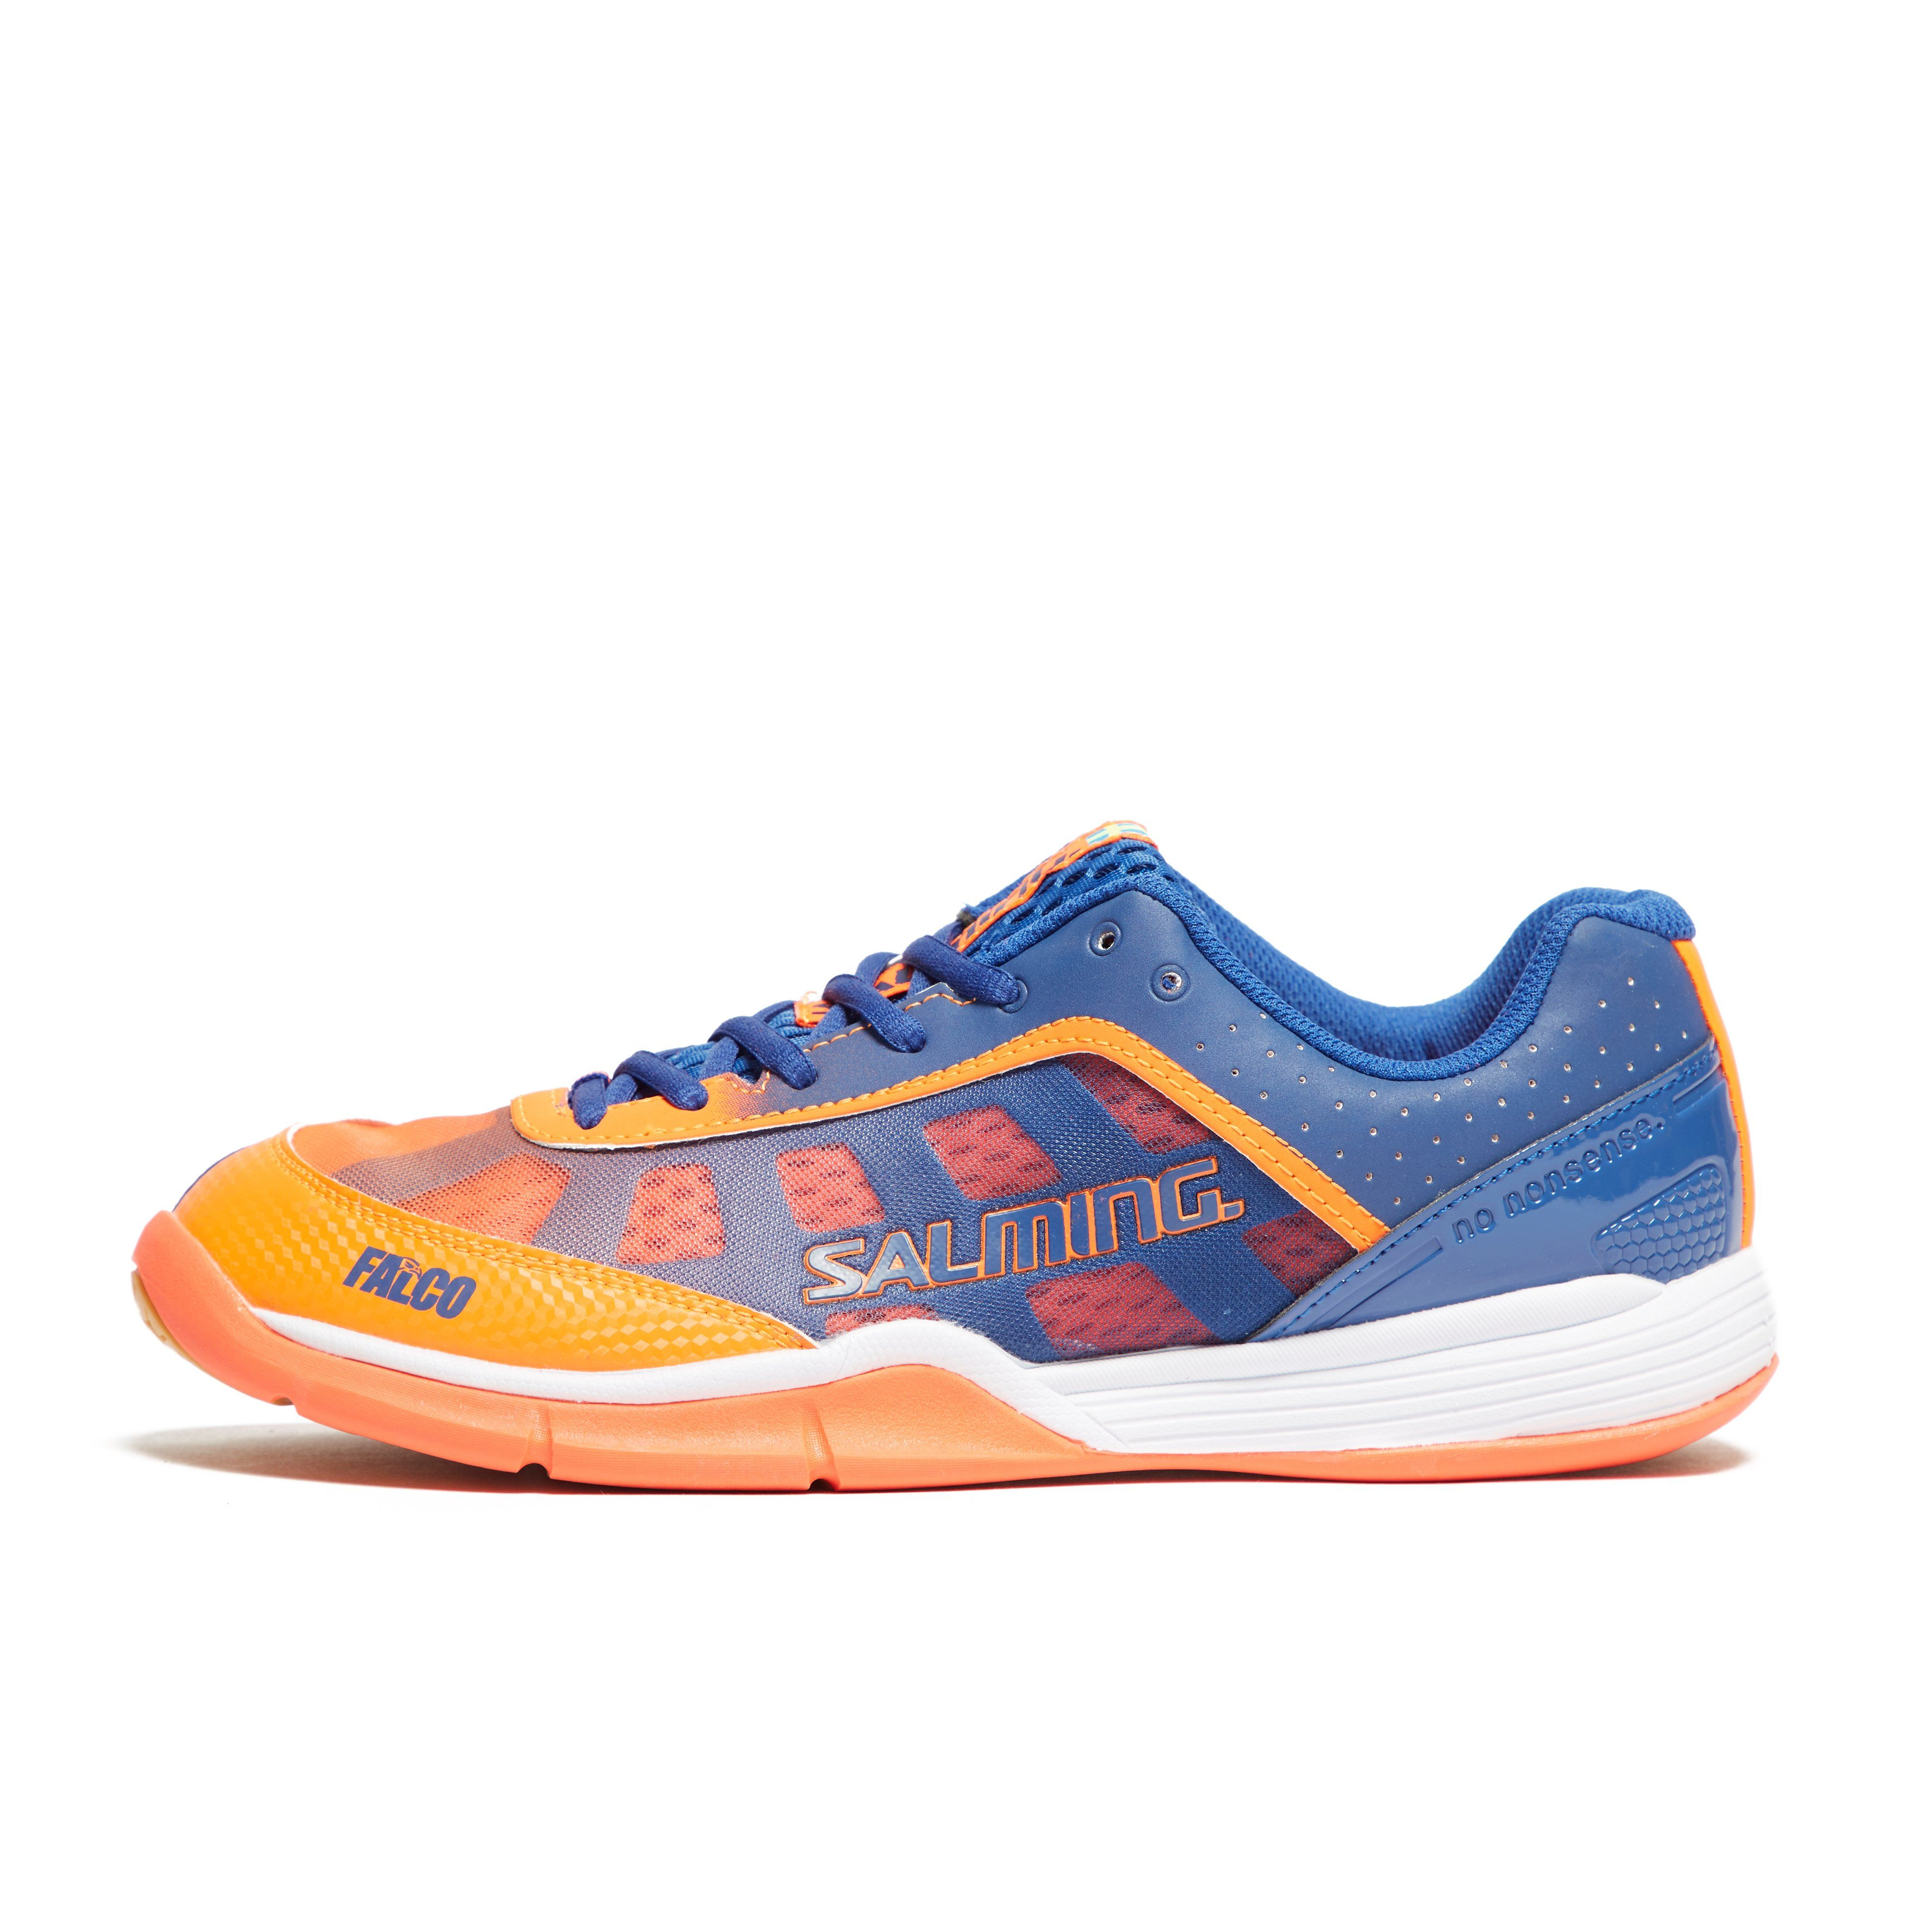 Salming Falco Men's Indoor Court Shoes